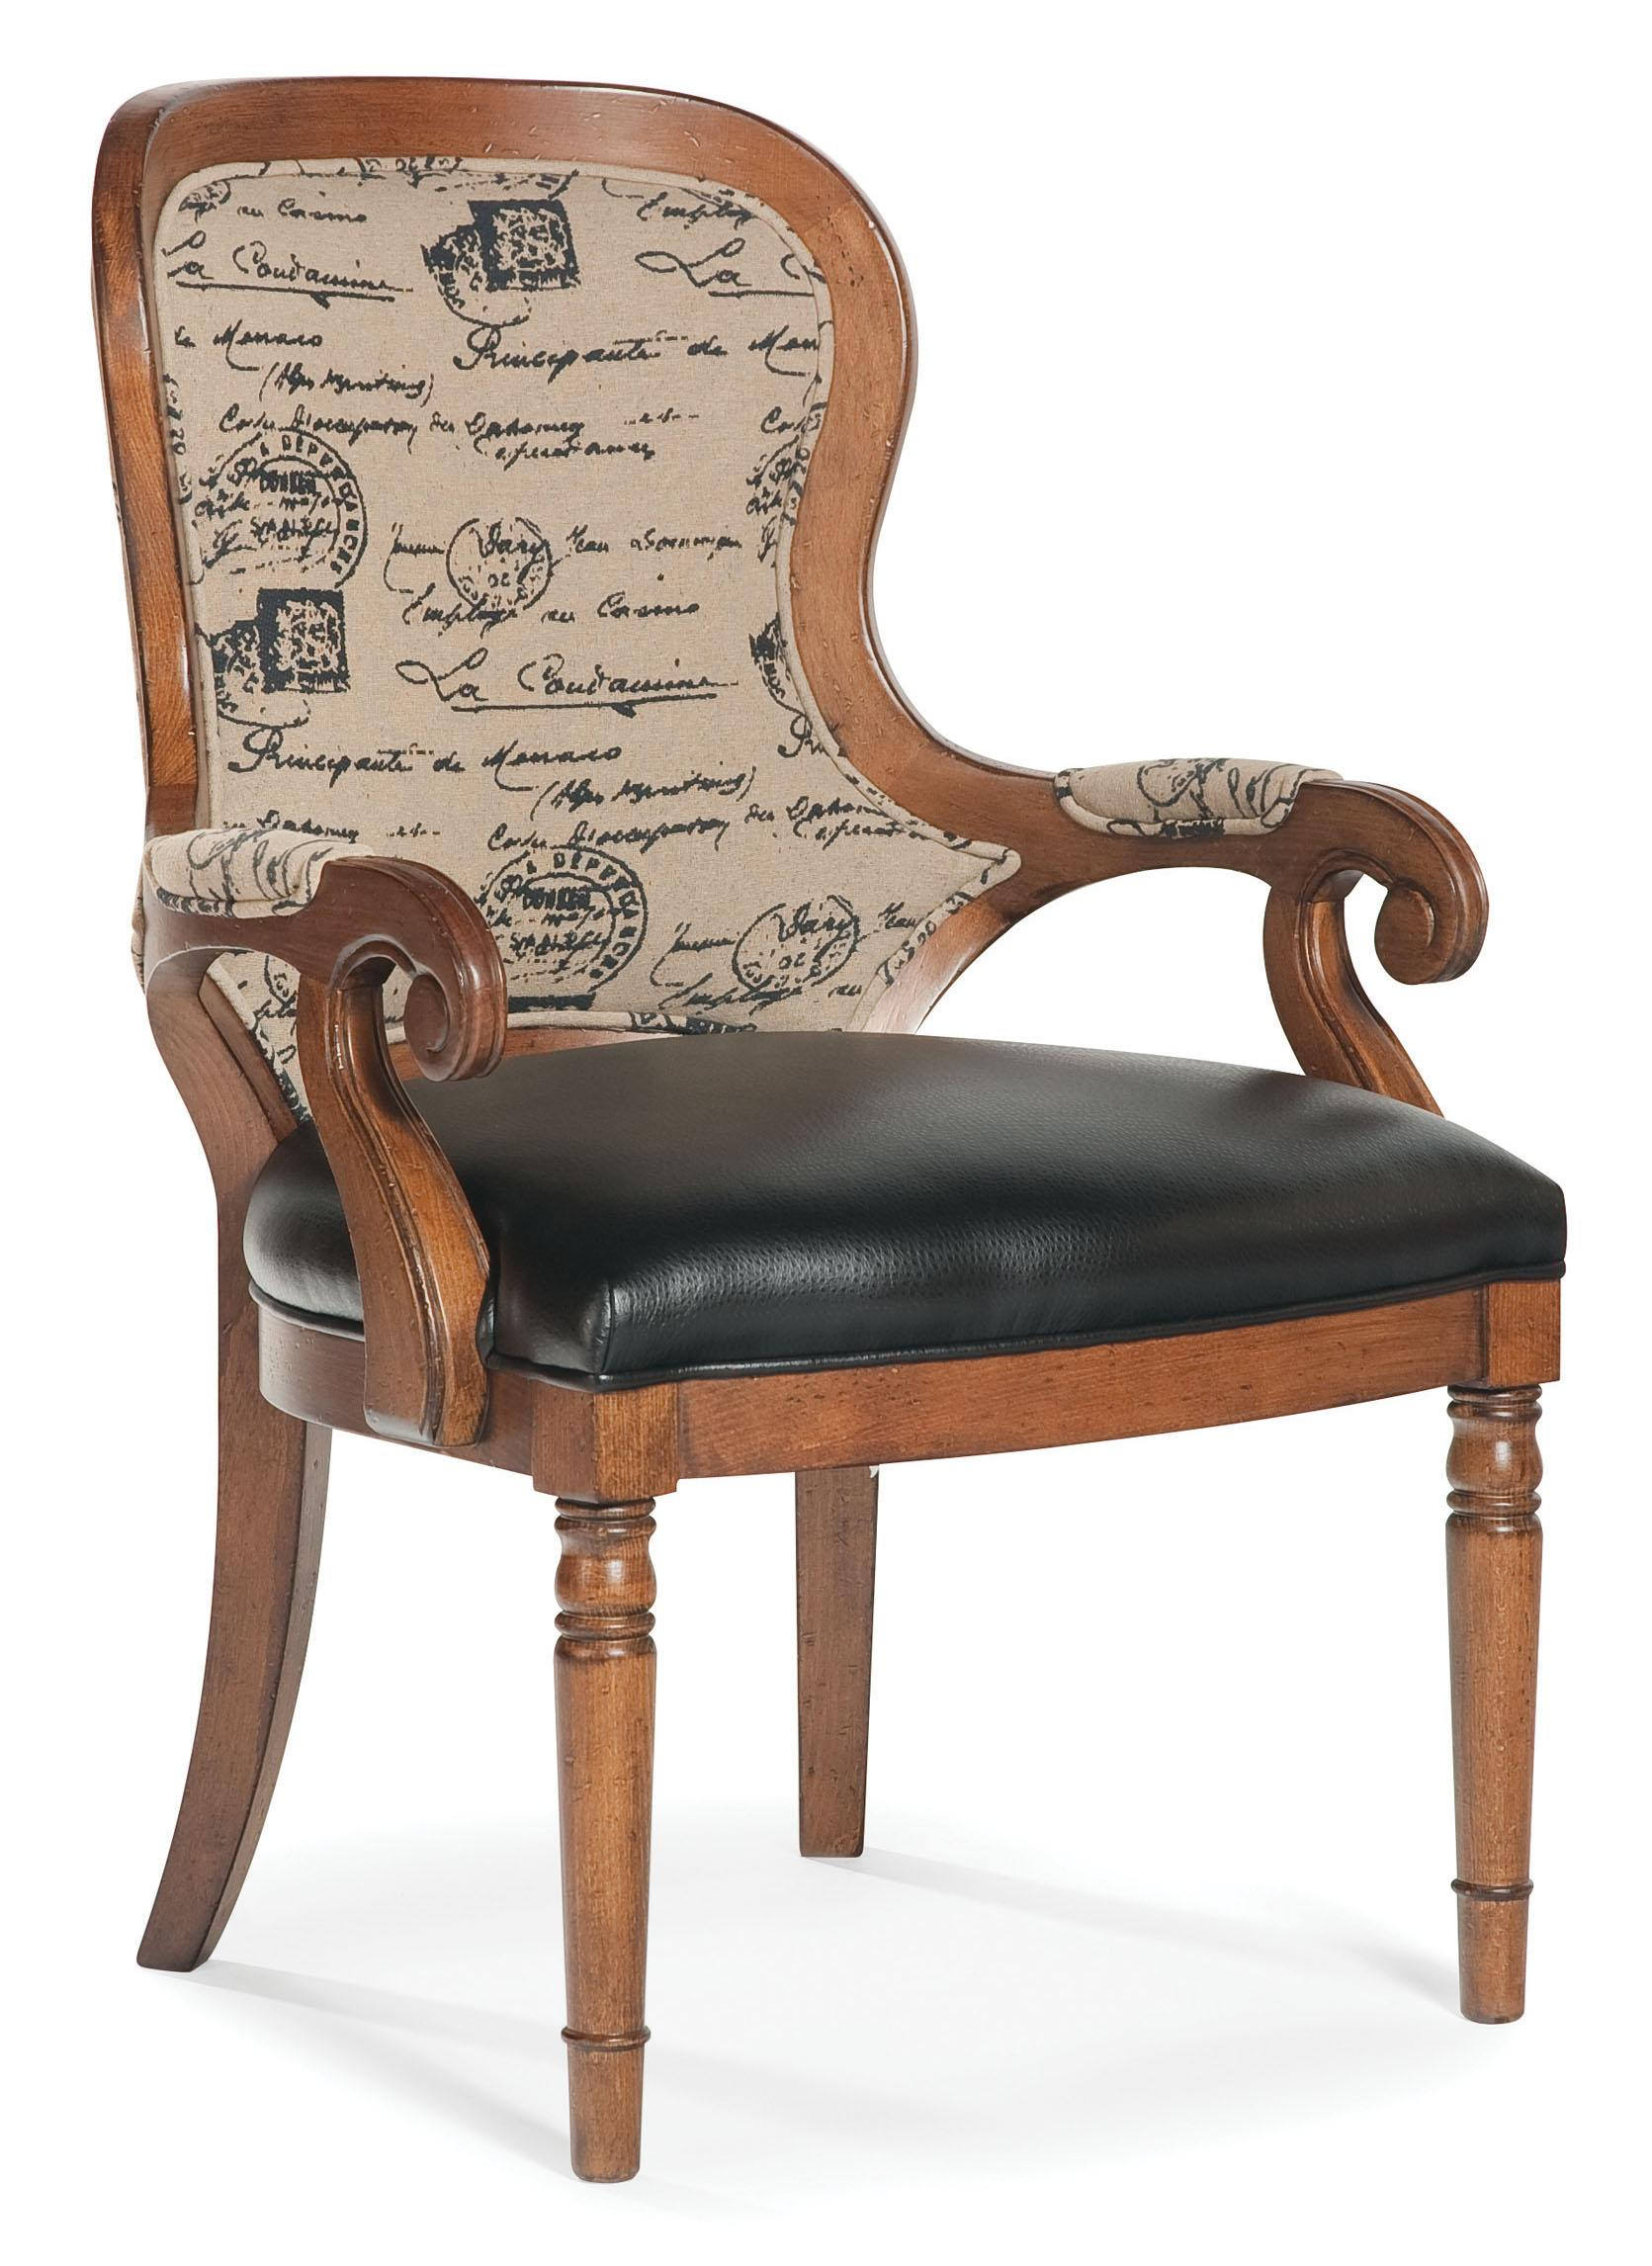 Fairfield Chairs Exposed Wood Accent Chair - Item Number: 5412-01